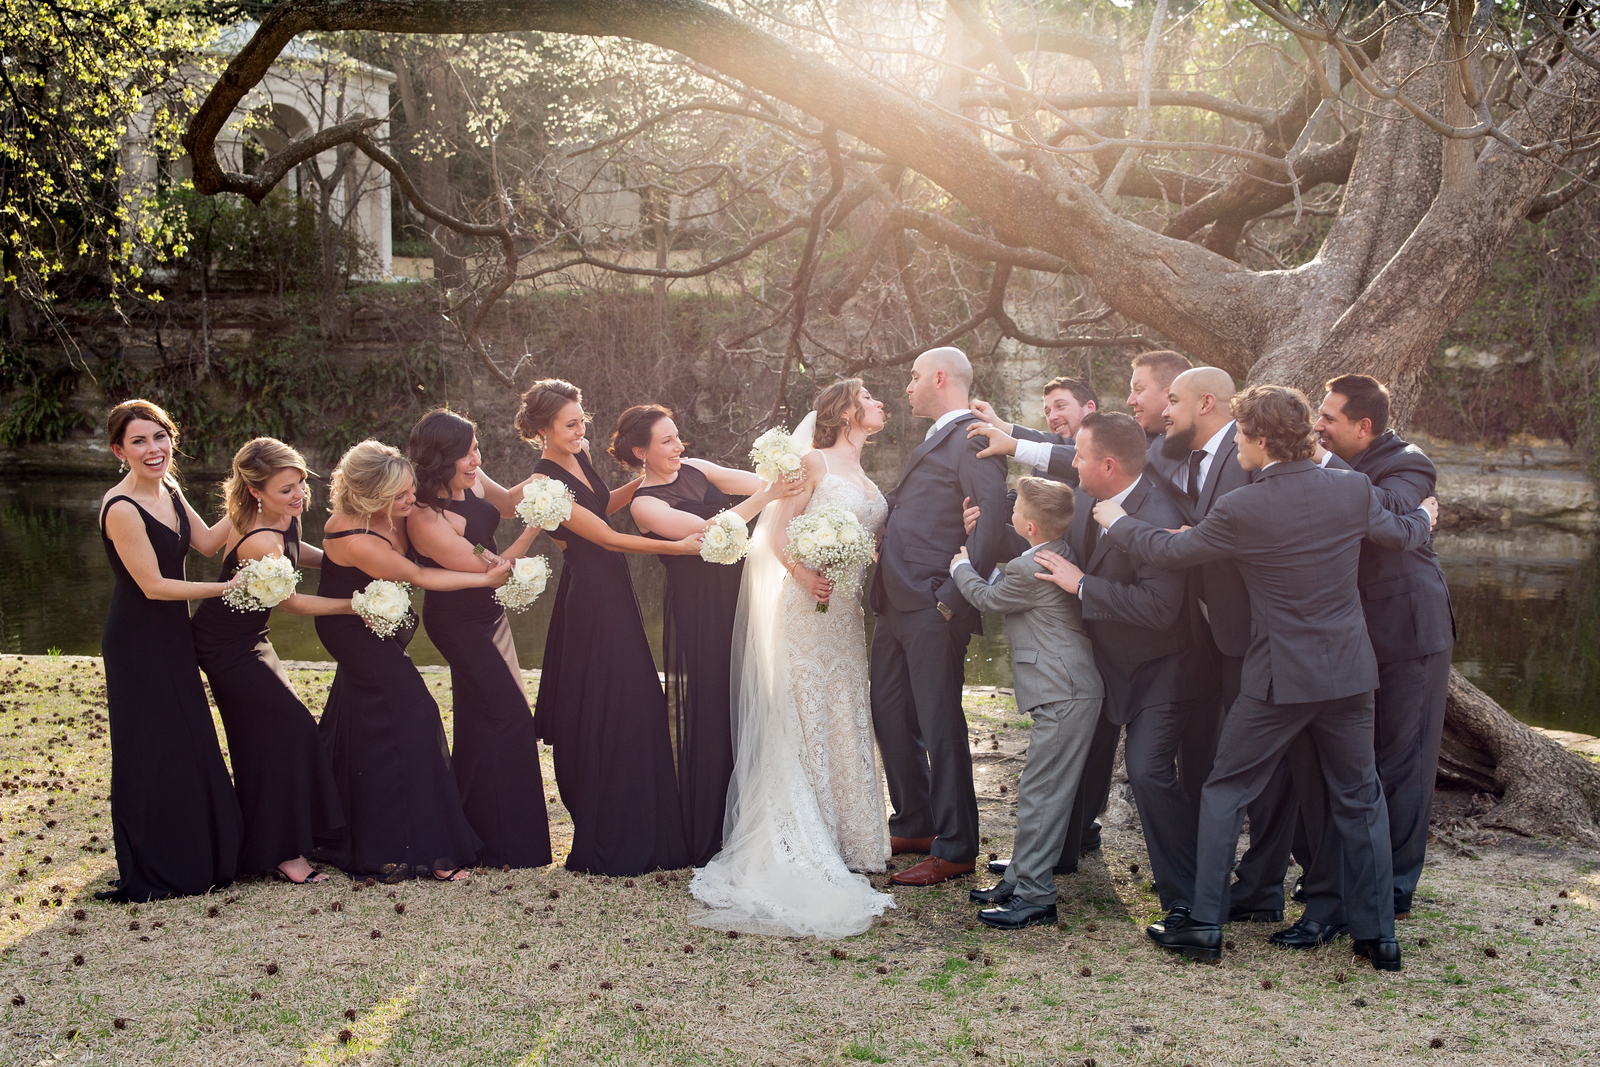 a bride and groom humorously being pulled apart by their wedding party of 6 bridesmaids and 6 groomsmen